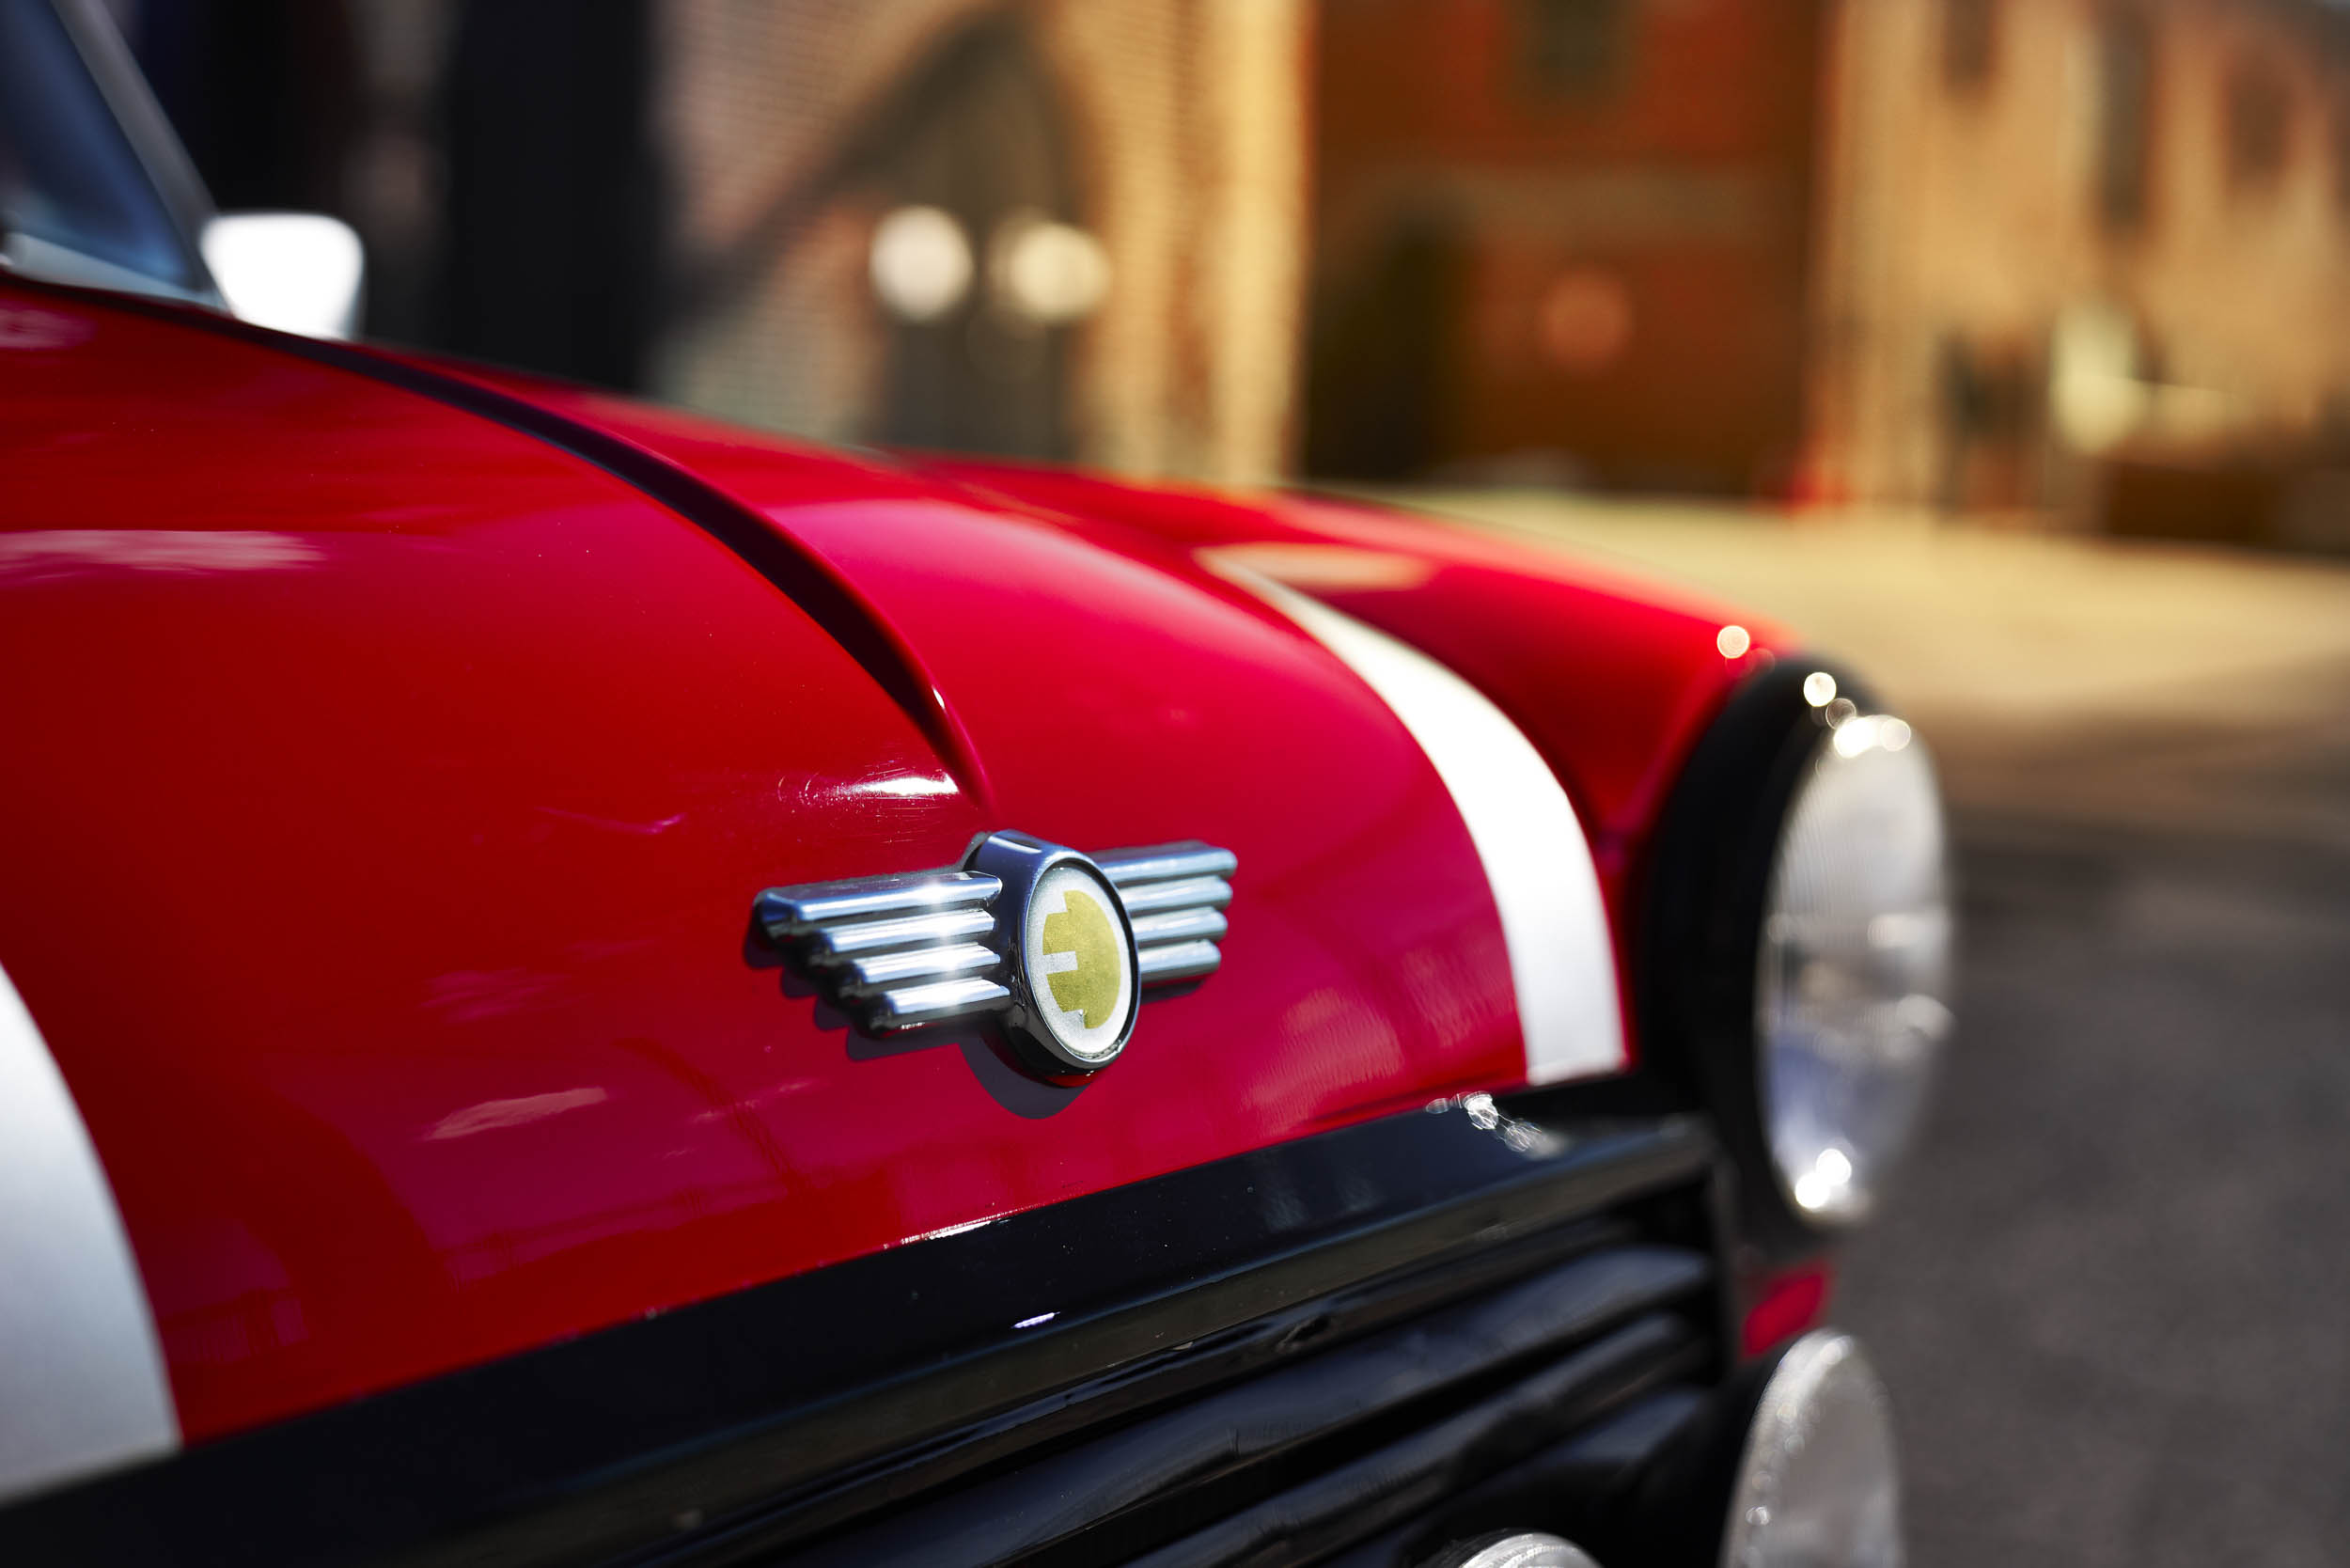 electric classic Mini front end